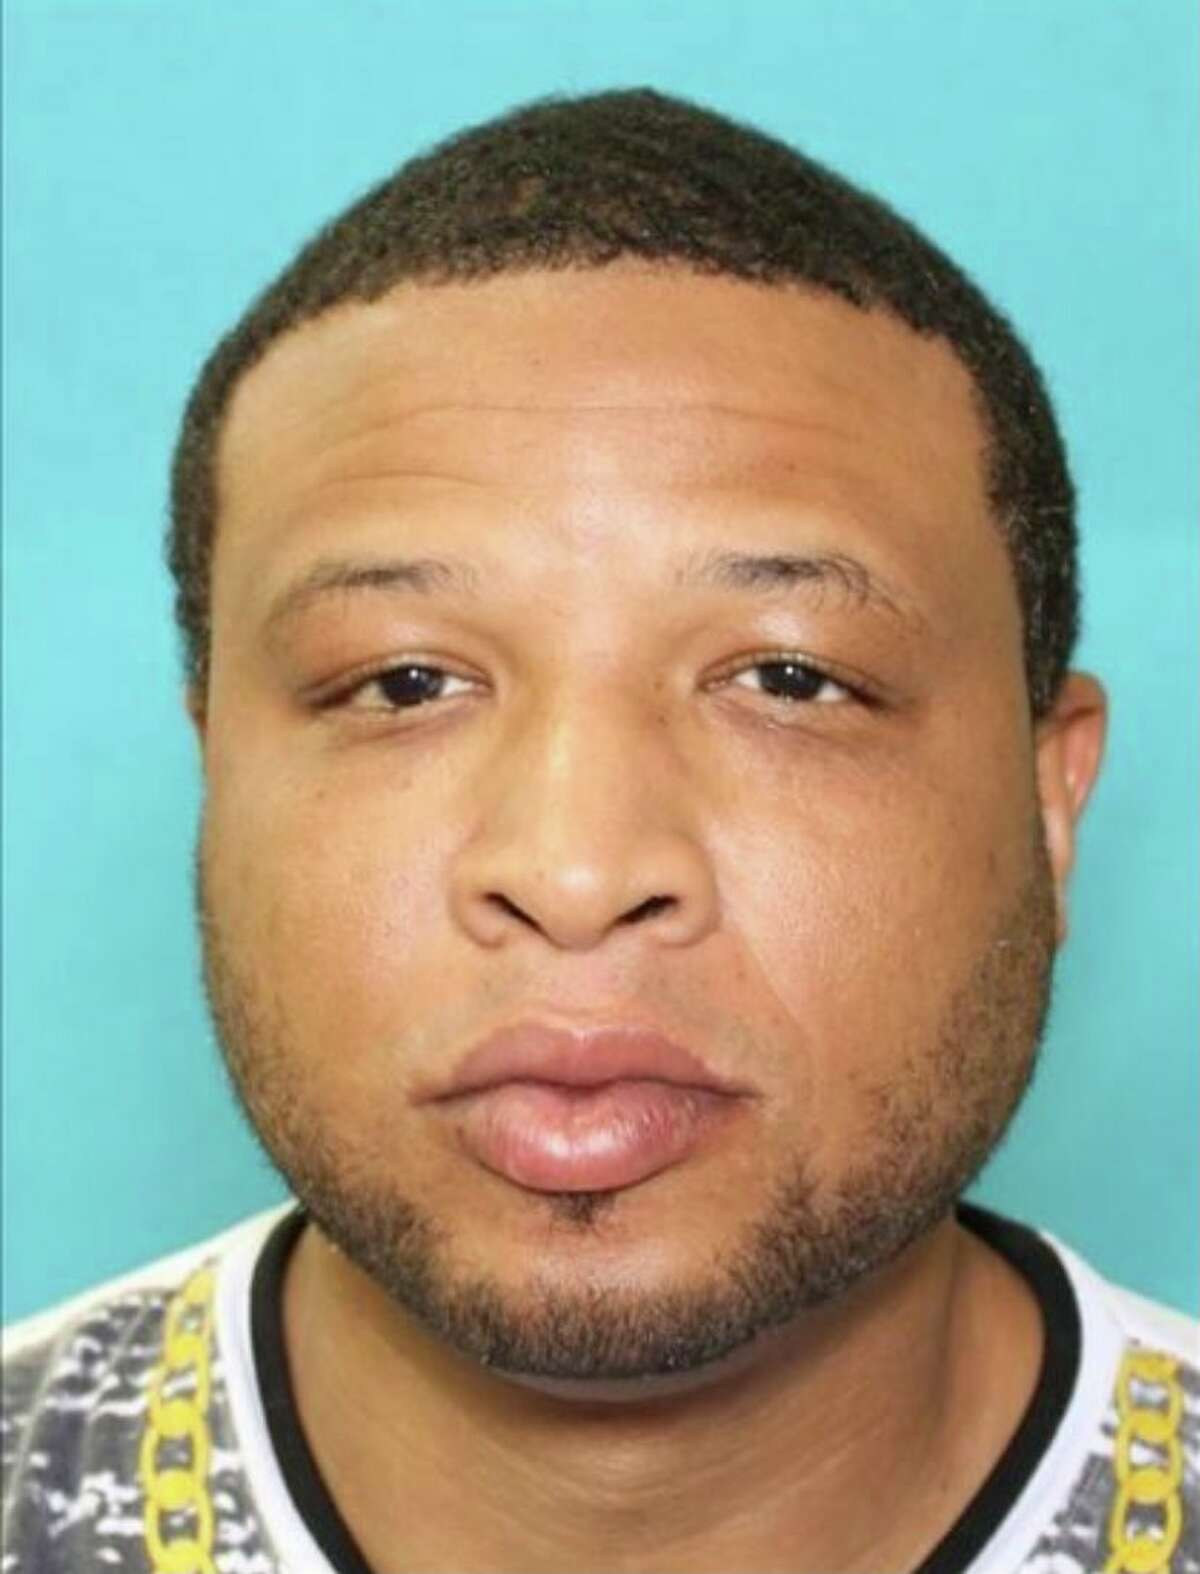 DeArthur Pinson Jr. is wanted in connection with the shooting of a state trooper, according to the Texas Department of Public Safety.